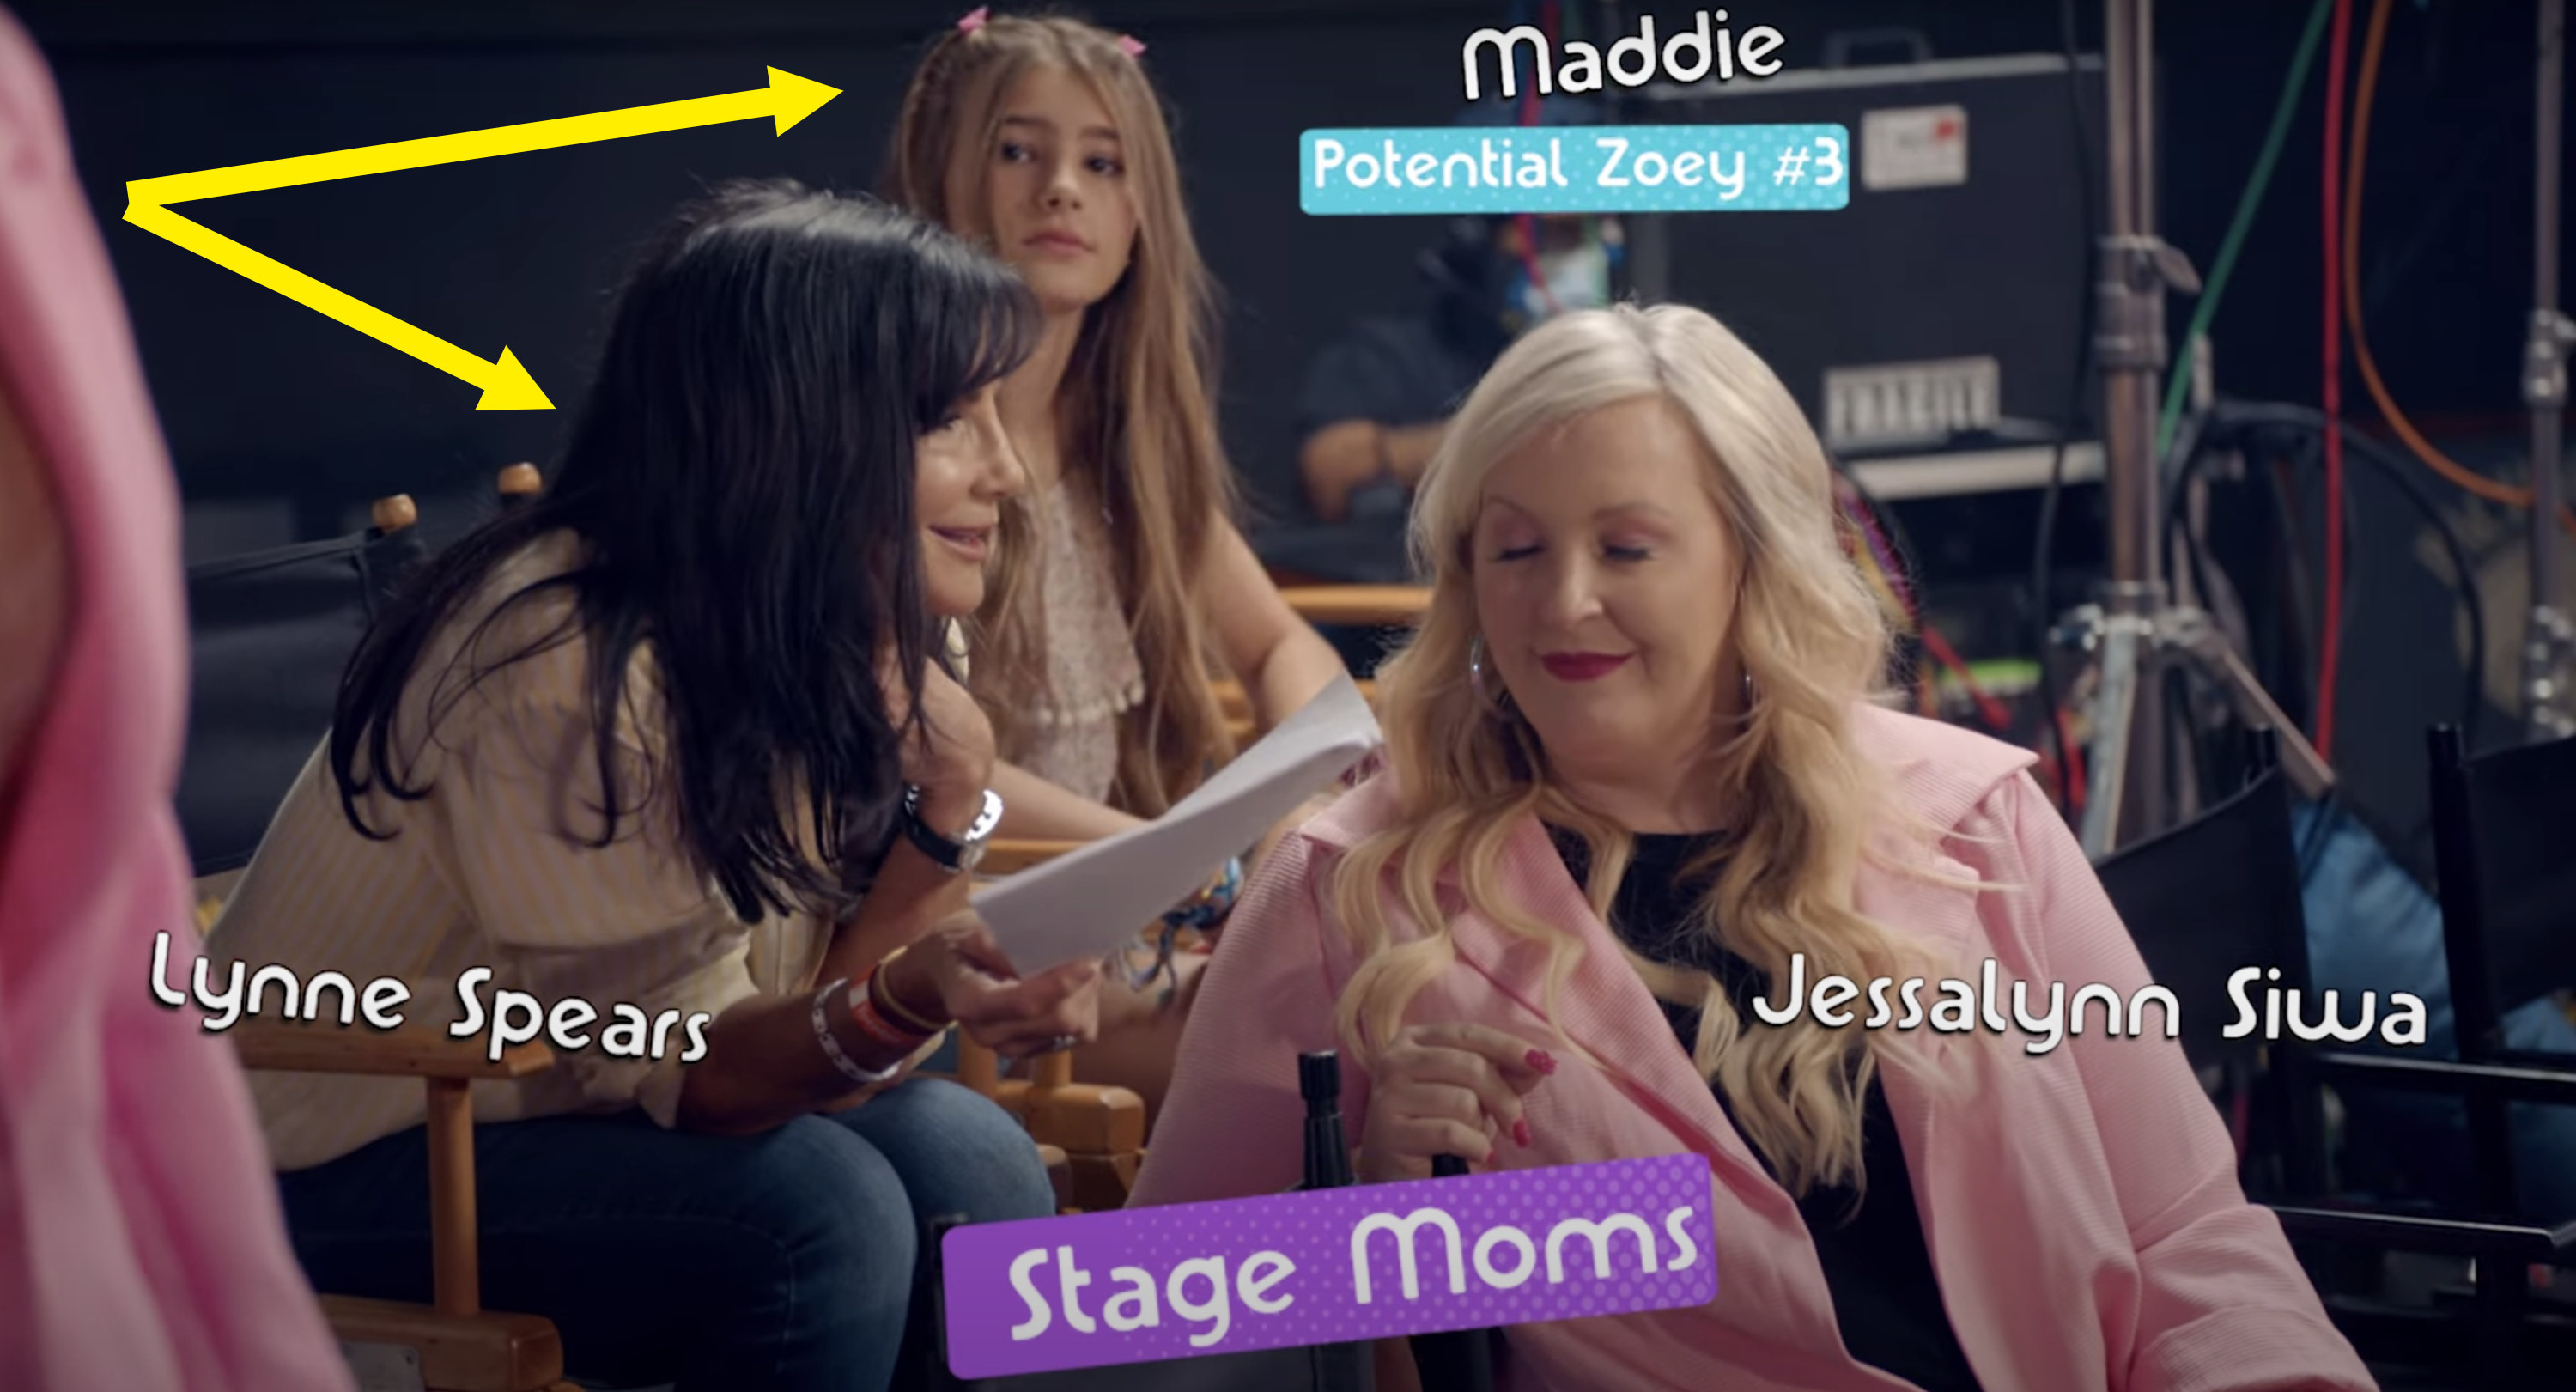 Lynne and Maddie watch the filming of the video